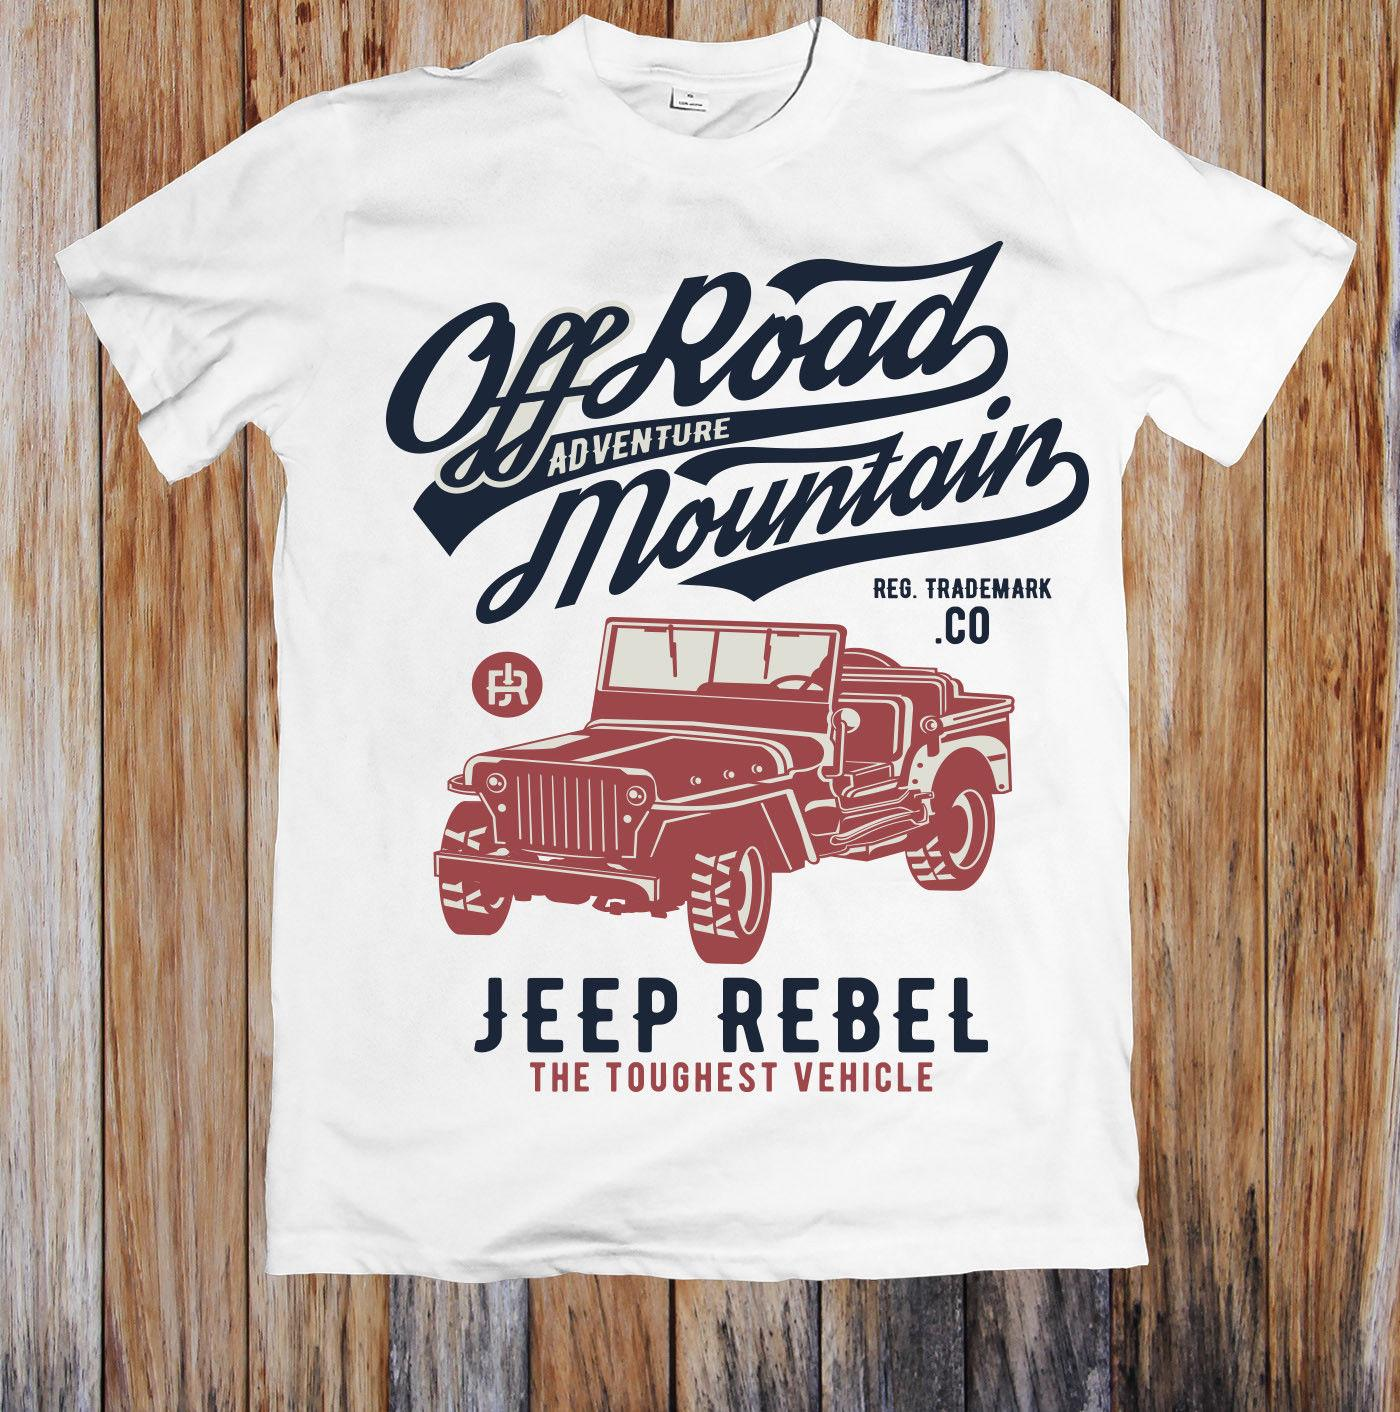 39824d588 OFF ROAD MOUNTAIN REBEL UNISEX T SHIRT Funny Unisex Casual Tee Top Designs  For T Shirts Awesome T Shirt From Clothes cafe charity